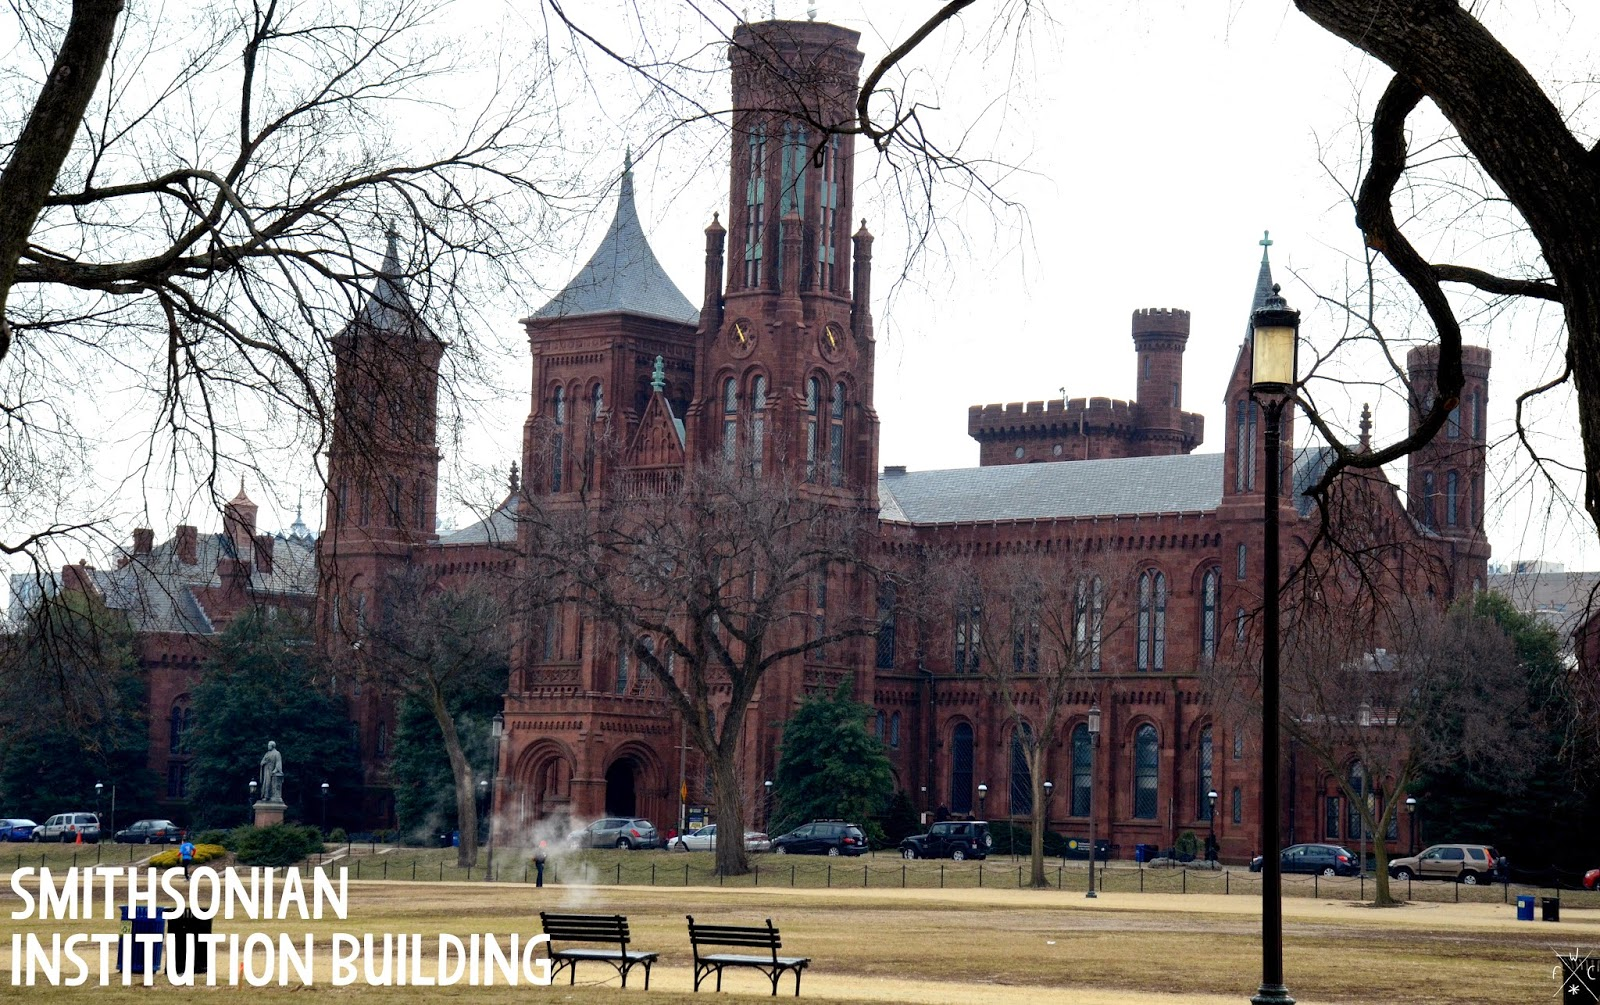 Smithsonian Institution Building, Washington DC, USA